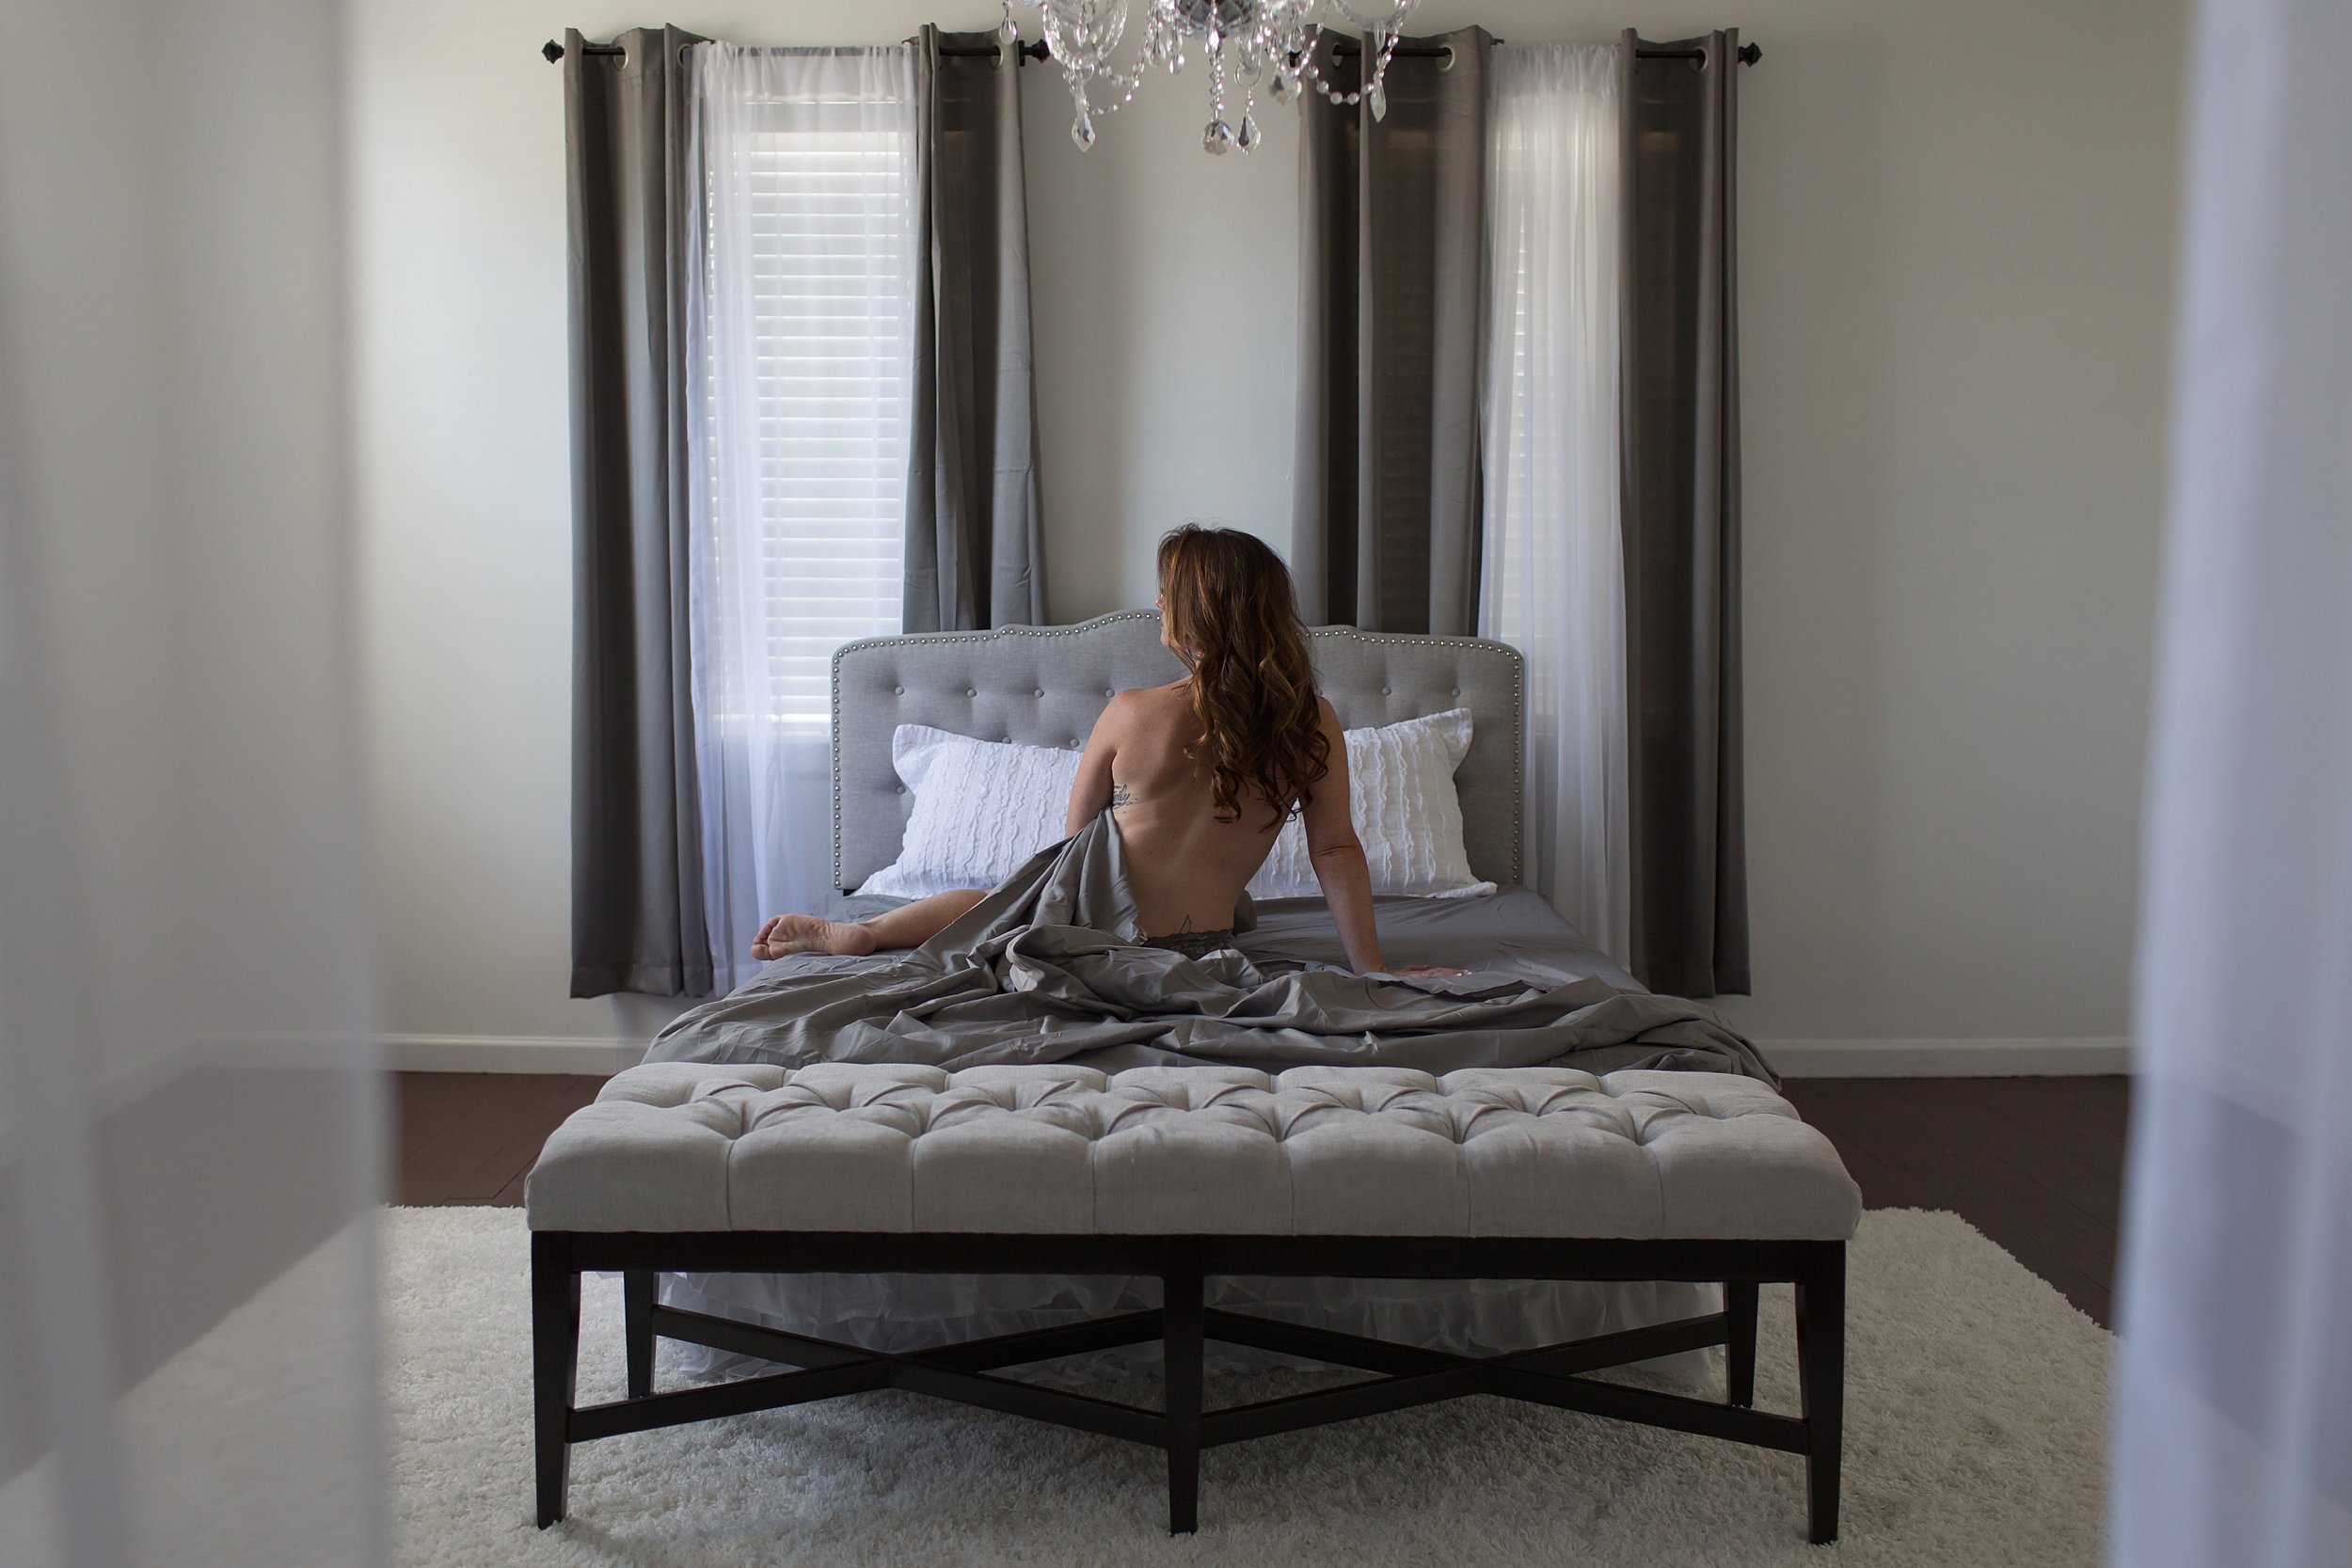 Woman sitting on bed in pretty room with gray sheets, tufted headboard, chandelier